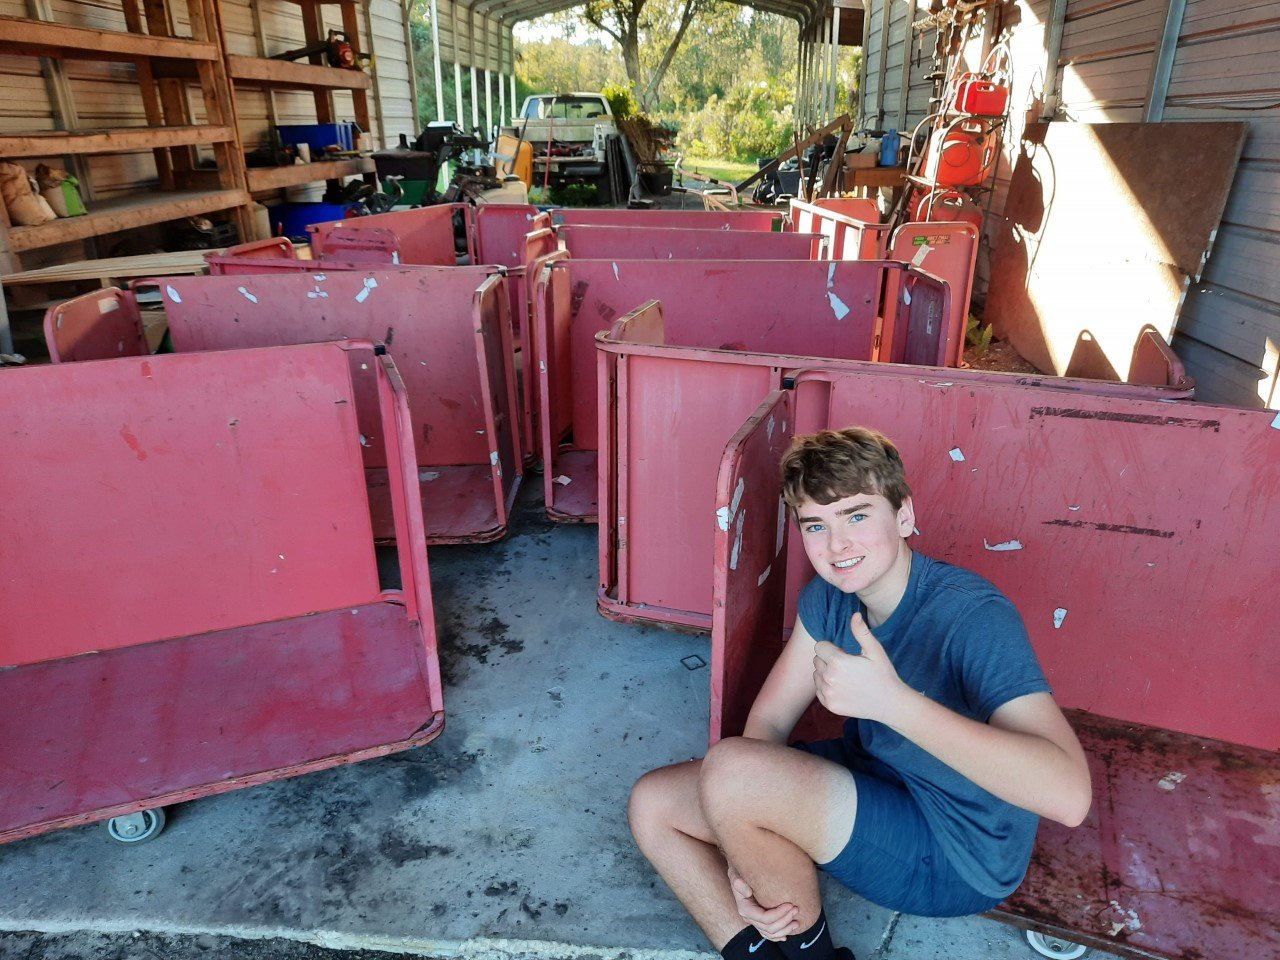 Eagle Scout Ben Black is seen with the BEAM food bank carts before they were refurbished.